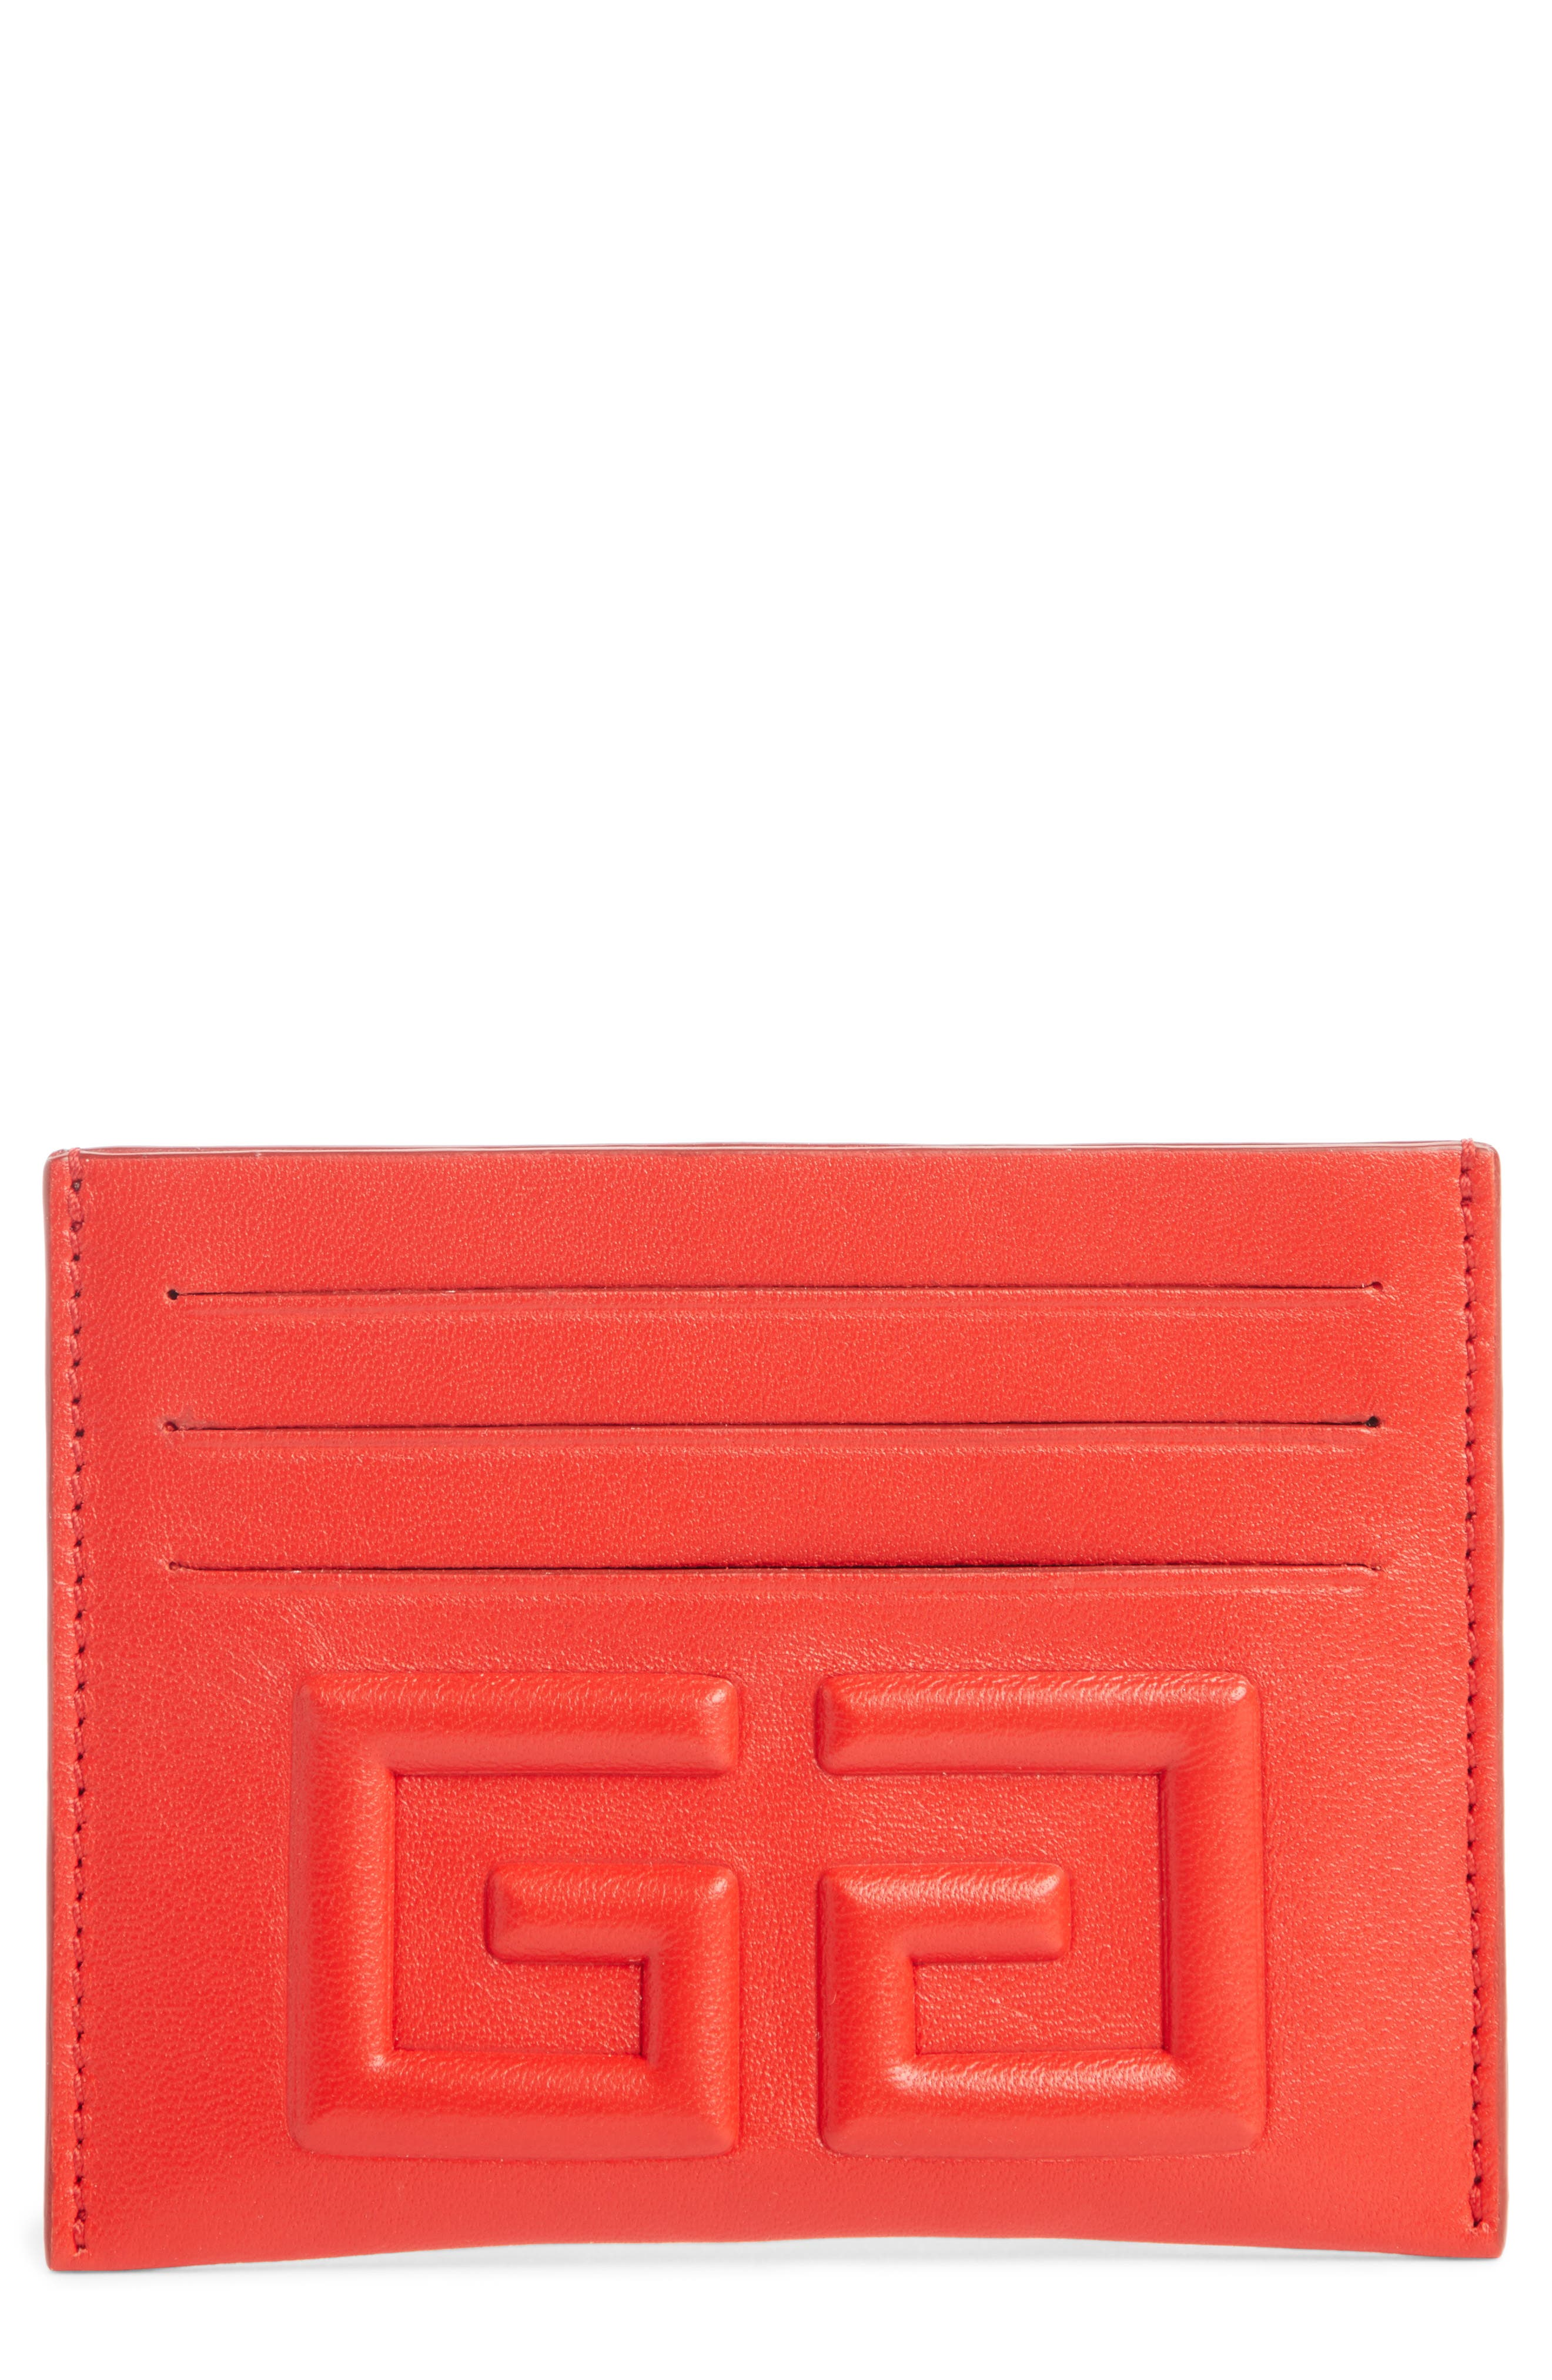 Embossed 4G Leather Card Case,                             Main thumbnail 1, color,                             Red